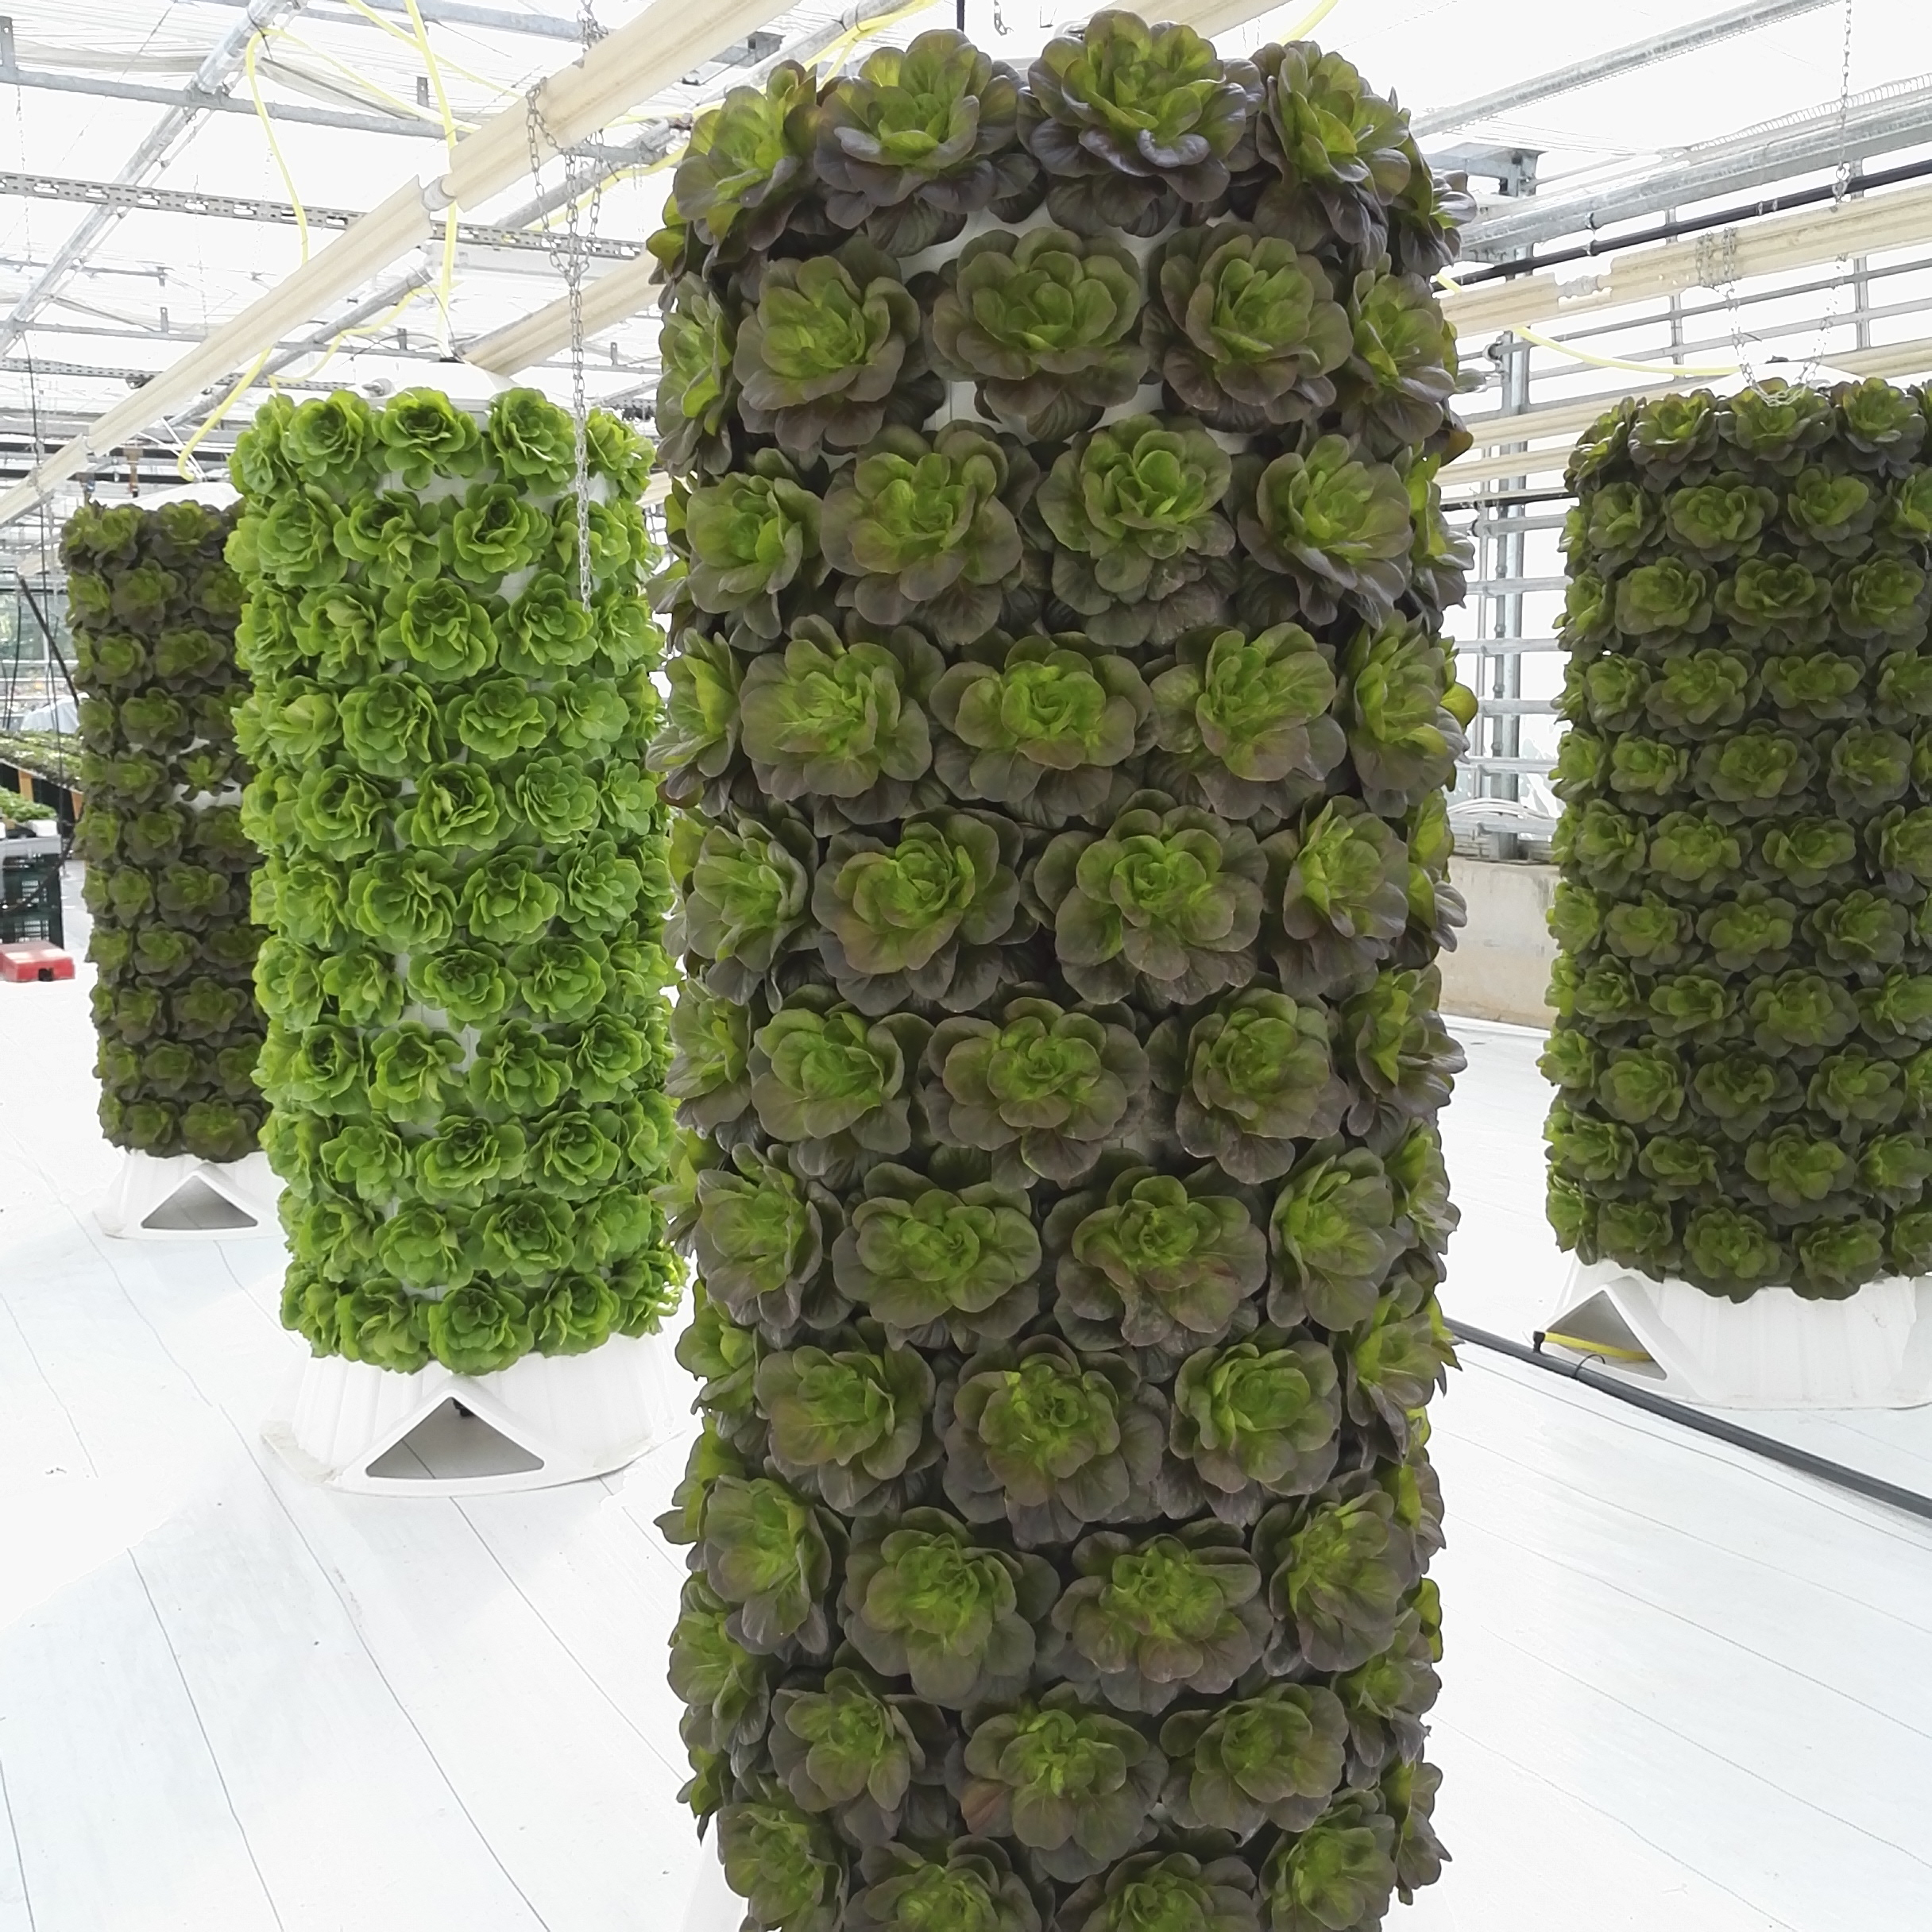 Grow Hydroponics Vertically